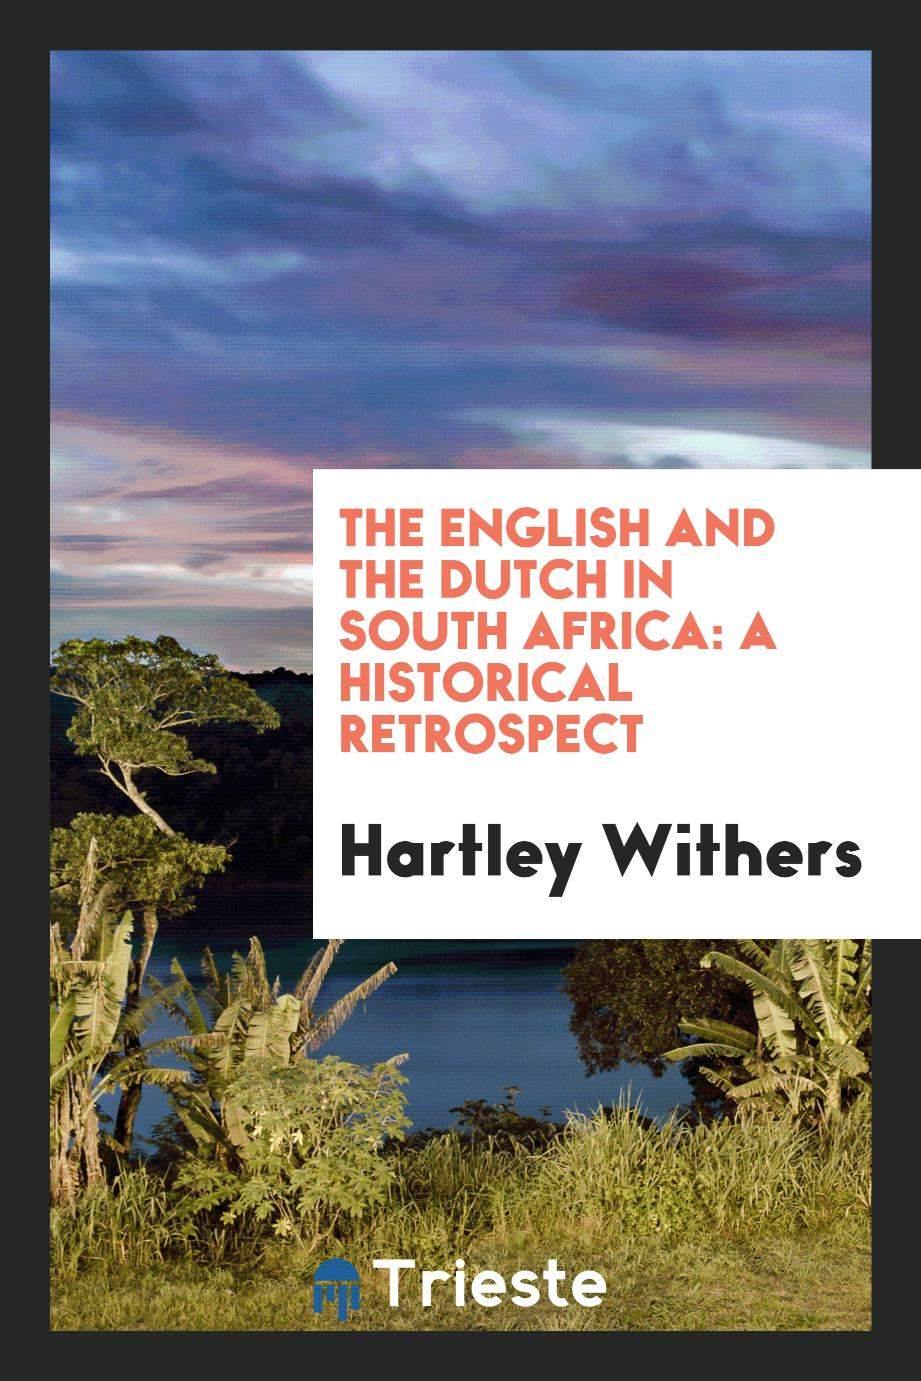 The English and the Dutch in South Africa: a historical retrospect